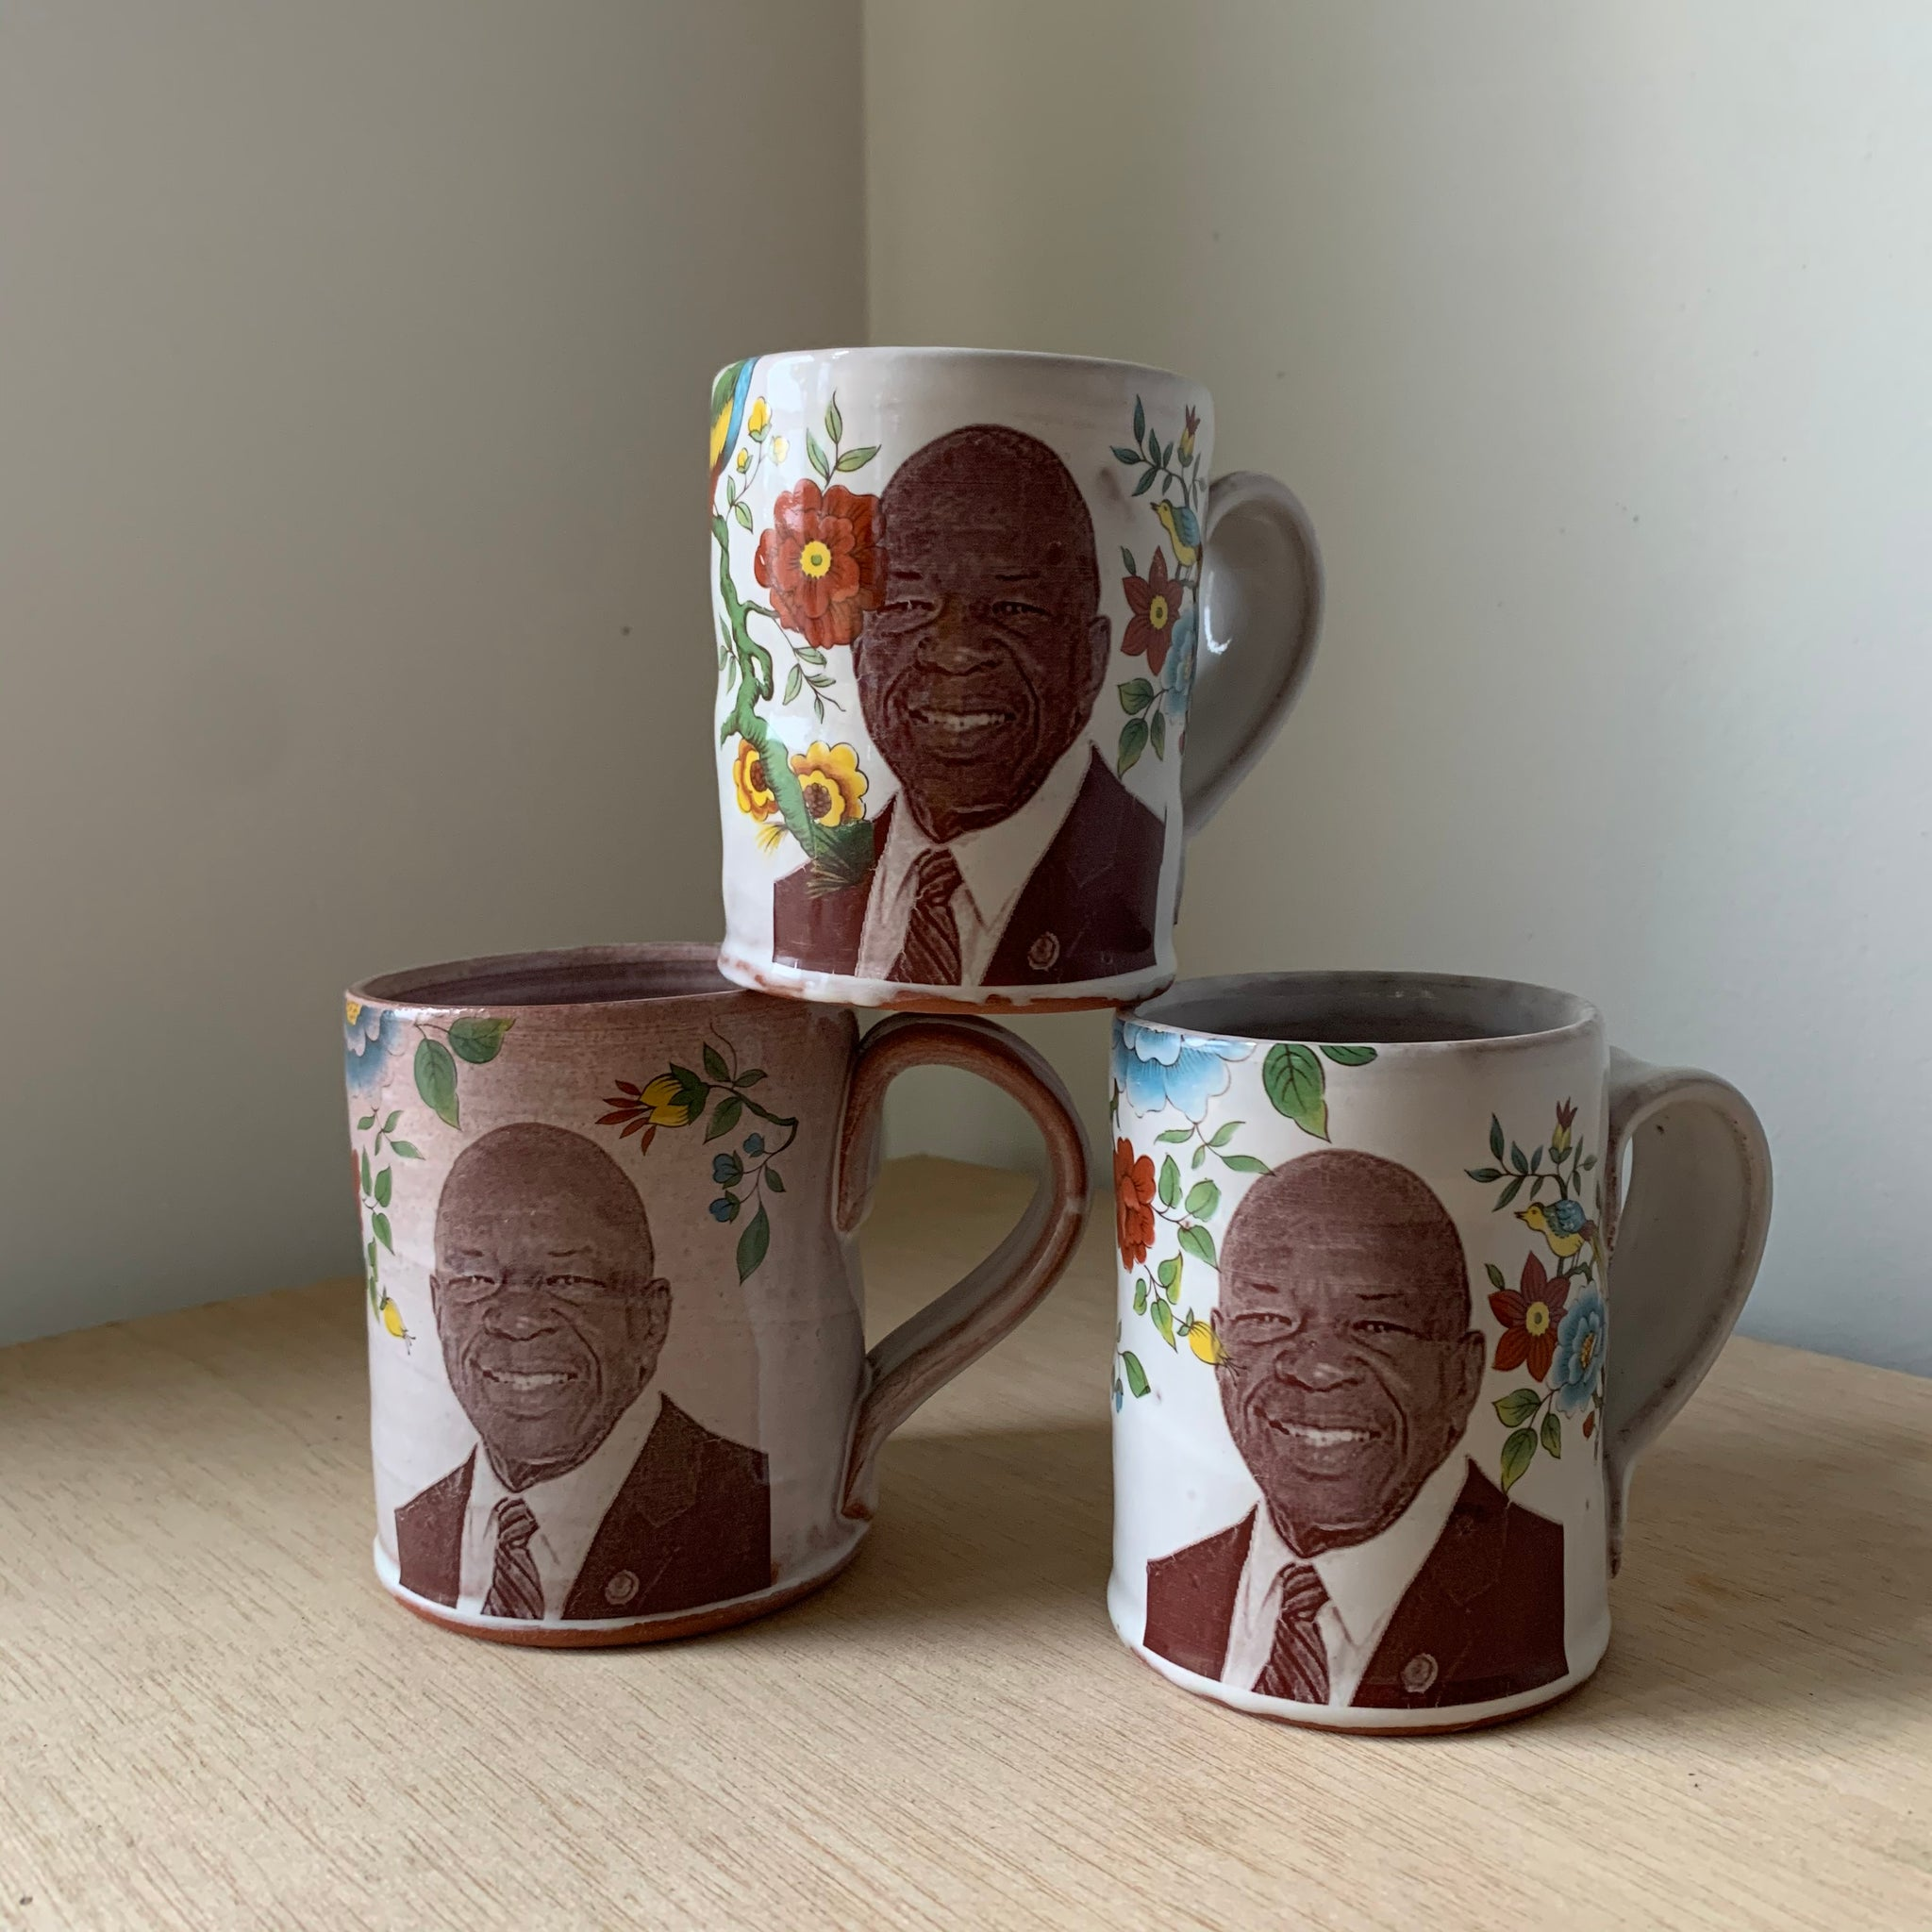 Elijah Cummings Floral Decorated Ceramic Mug by Justin Rothshank